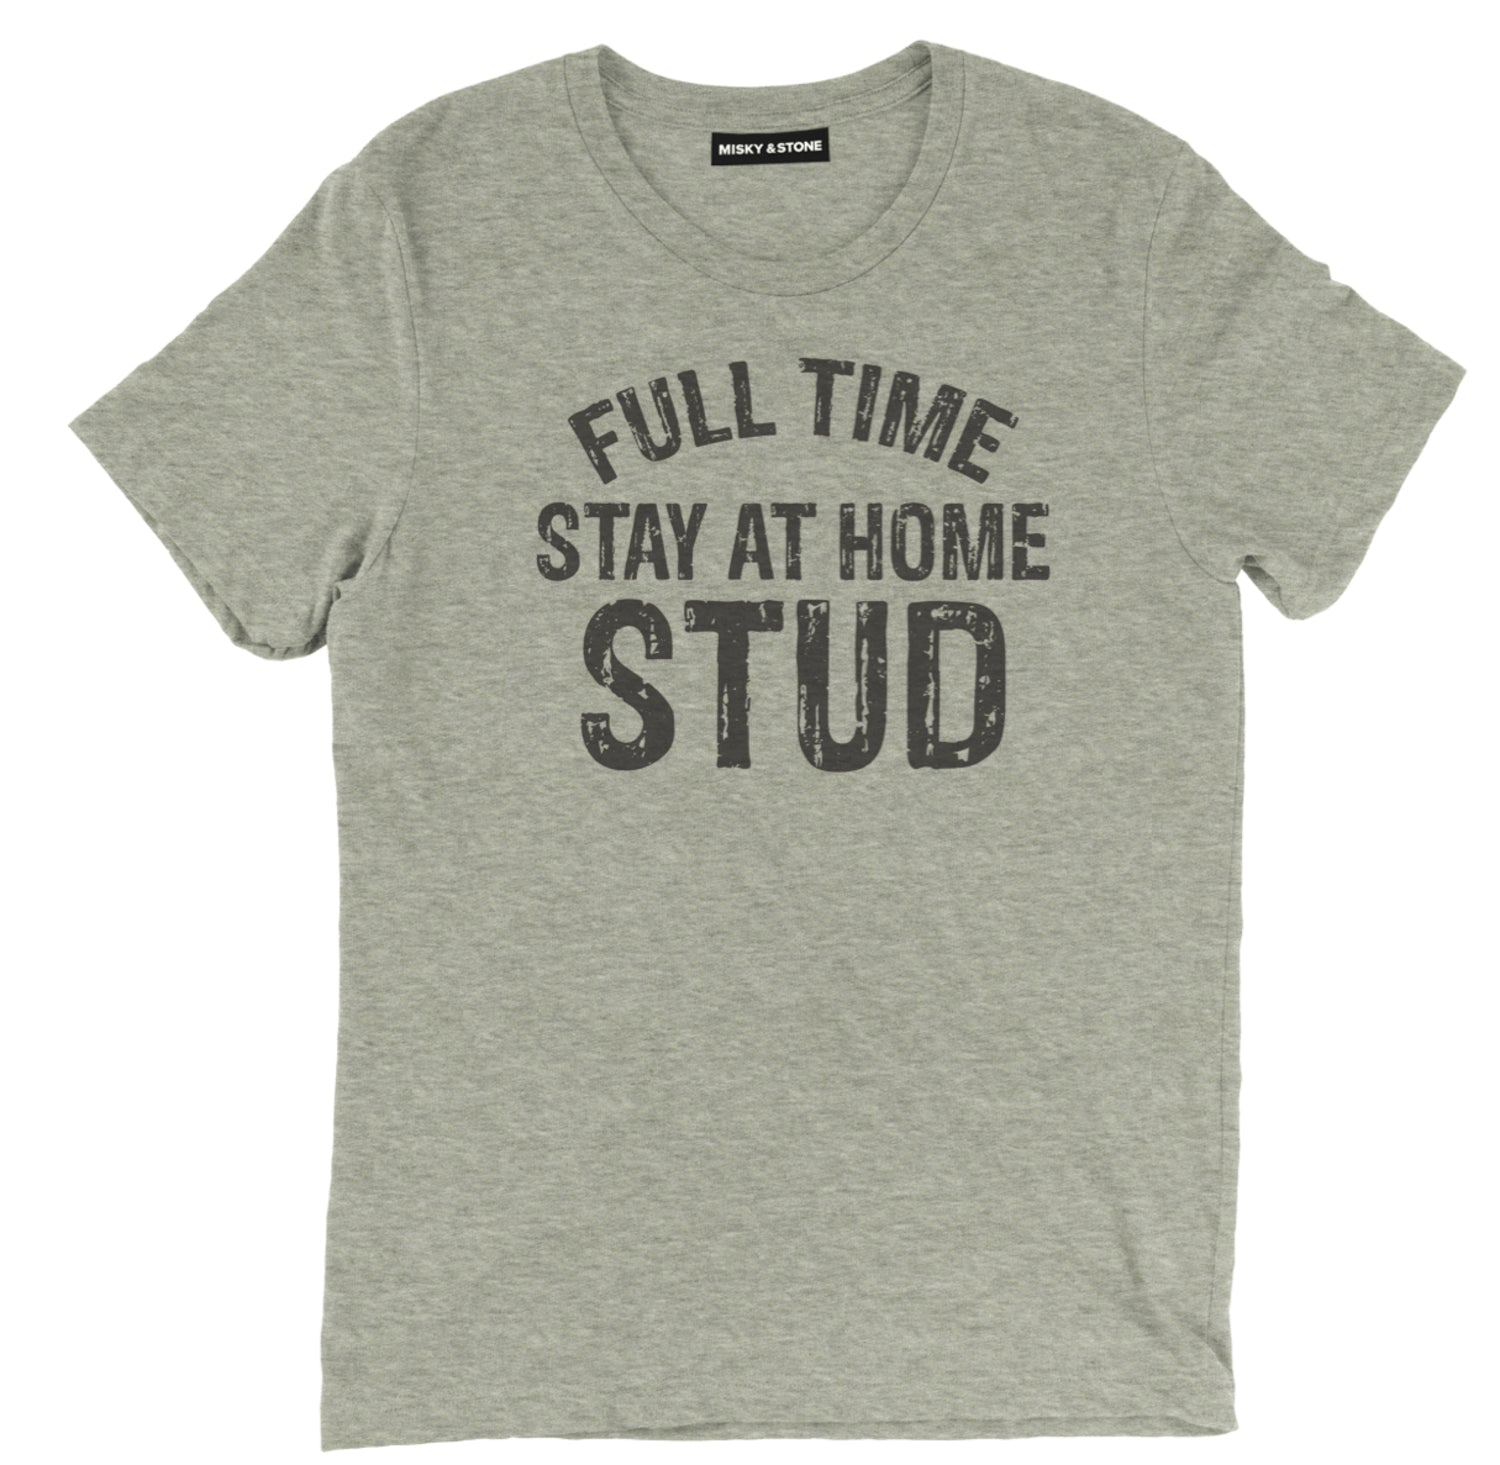 full time stay at home stud t shirt, full time stay at home stud shirt, sarcastic t shirts, sarcastic shirts, sarcastic tee shirts, sarcastic tees, sarcastic t shirt sayings, sarcastic t shirts quotes, funny sarcastic t shirts,